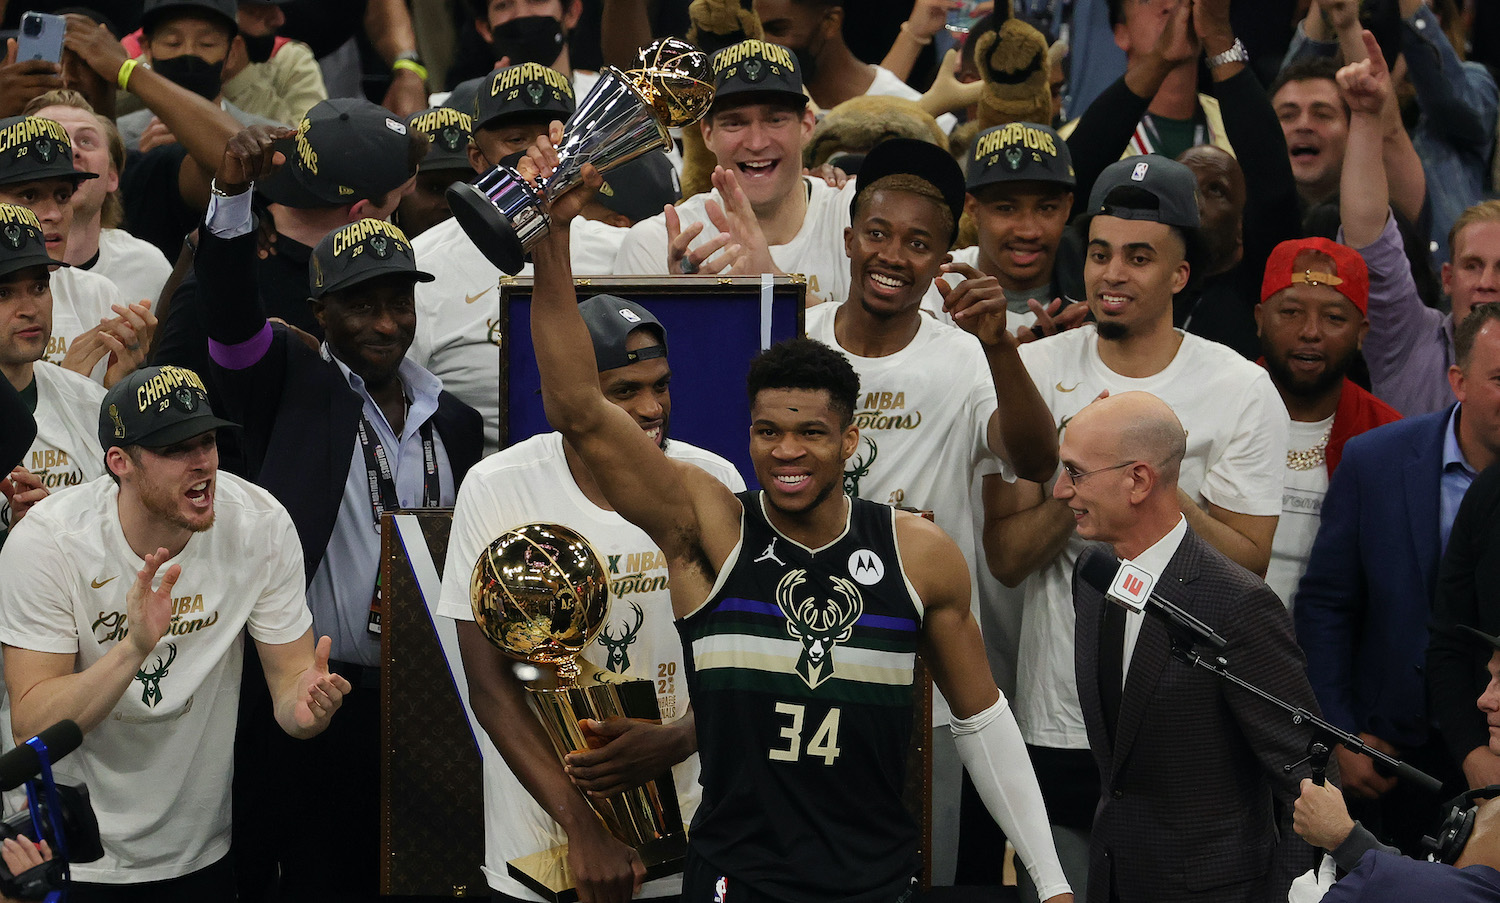 MILWAUKEE, WISCONSIN - JULY 20: Giannis Antetokounmpo #34 of the Milwaukee Bucks celebrates winning the Bill Russell NBA Finals MVP Award after defeating the Phoenix Suns in Game Six to win the 2021 NBA Finals at Fiserv Forum on July 20, 2021 in Milwaukee, Wisconsin. NOTE TO USER: User expressly acknowledges and agrees that, by downloading and or using this photograph, User is consenting to the terms and conditions of the Getty Images License Agreement. (Photo by Jonathan Daniel/Getty Images)